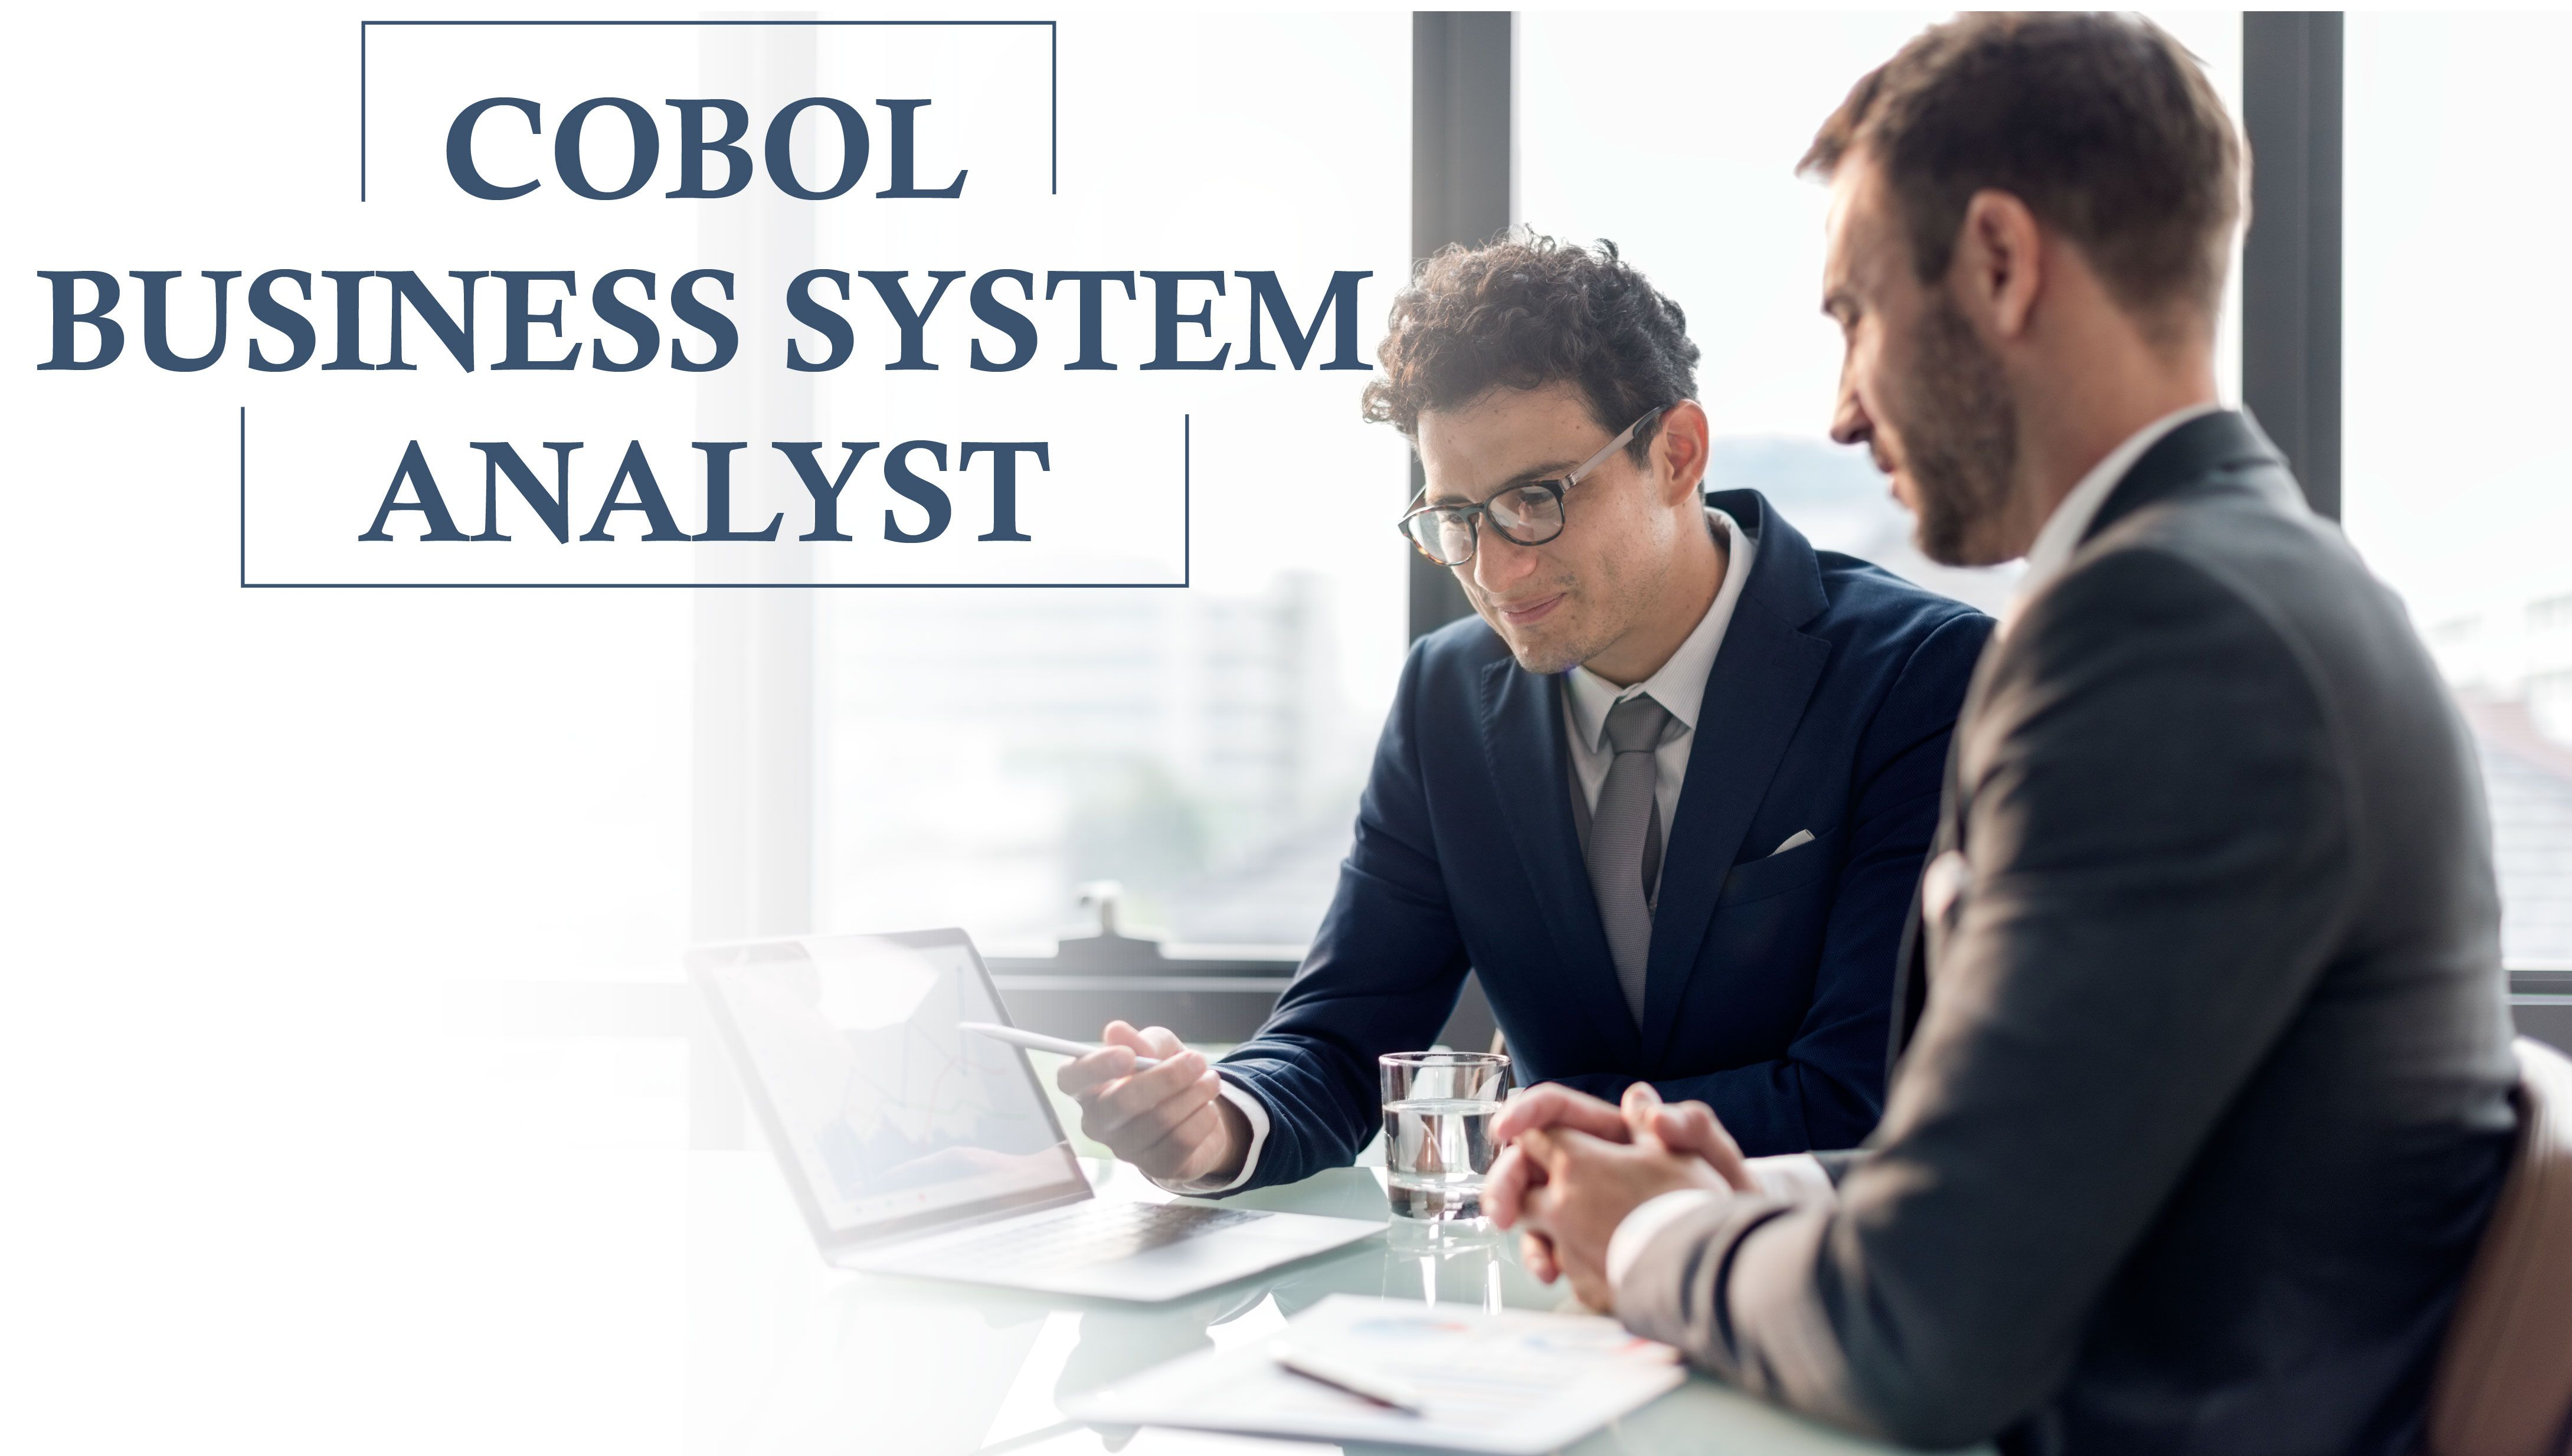 Jobs For Cobol Business System Analyst In Singapore Business Systems Software Development Life Cycle Persuasive Techniques